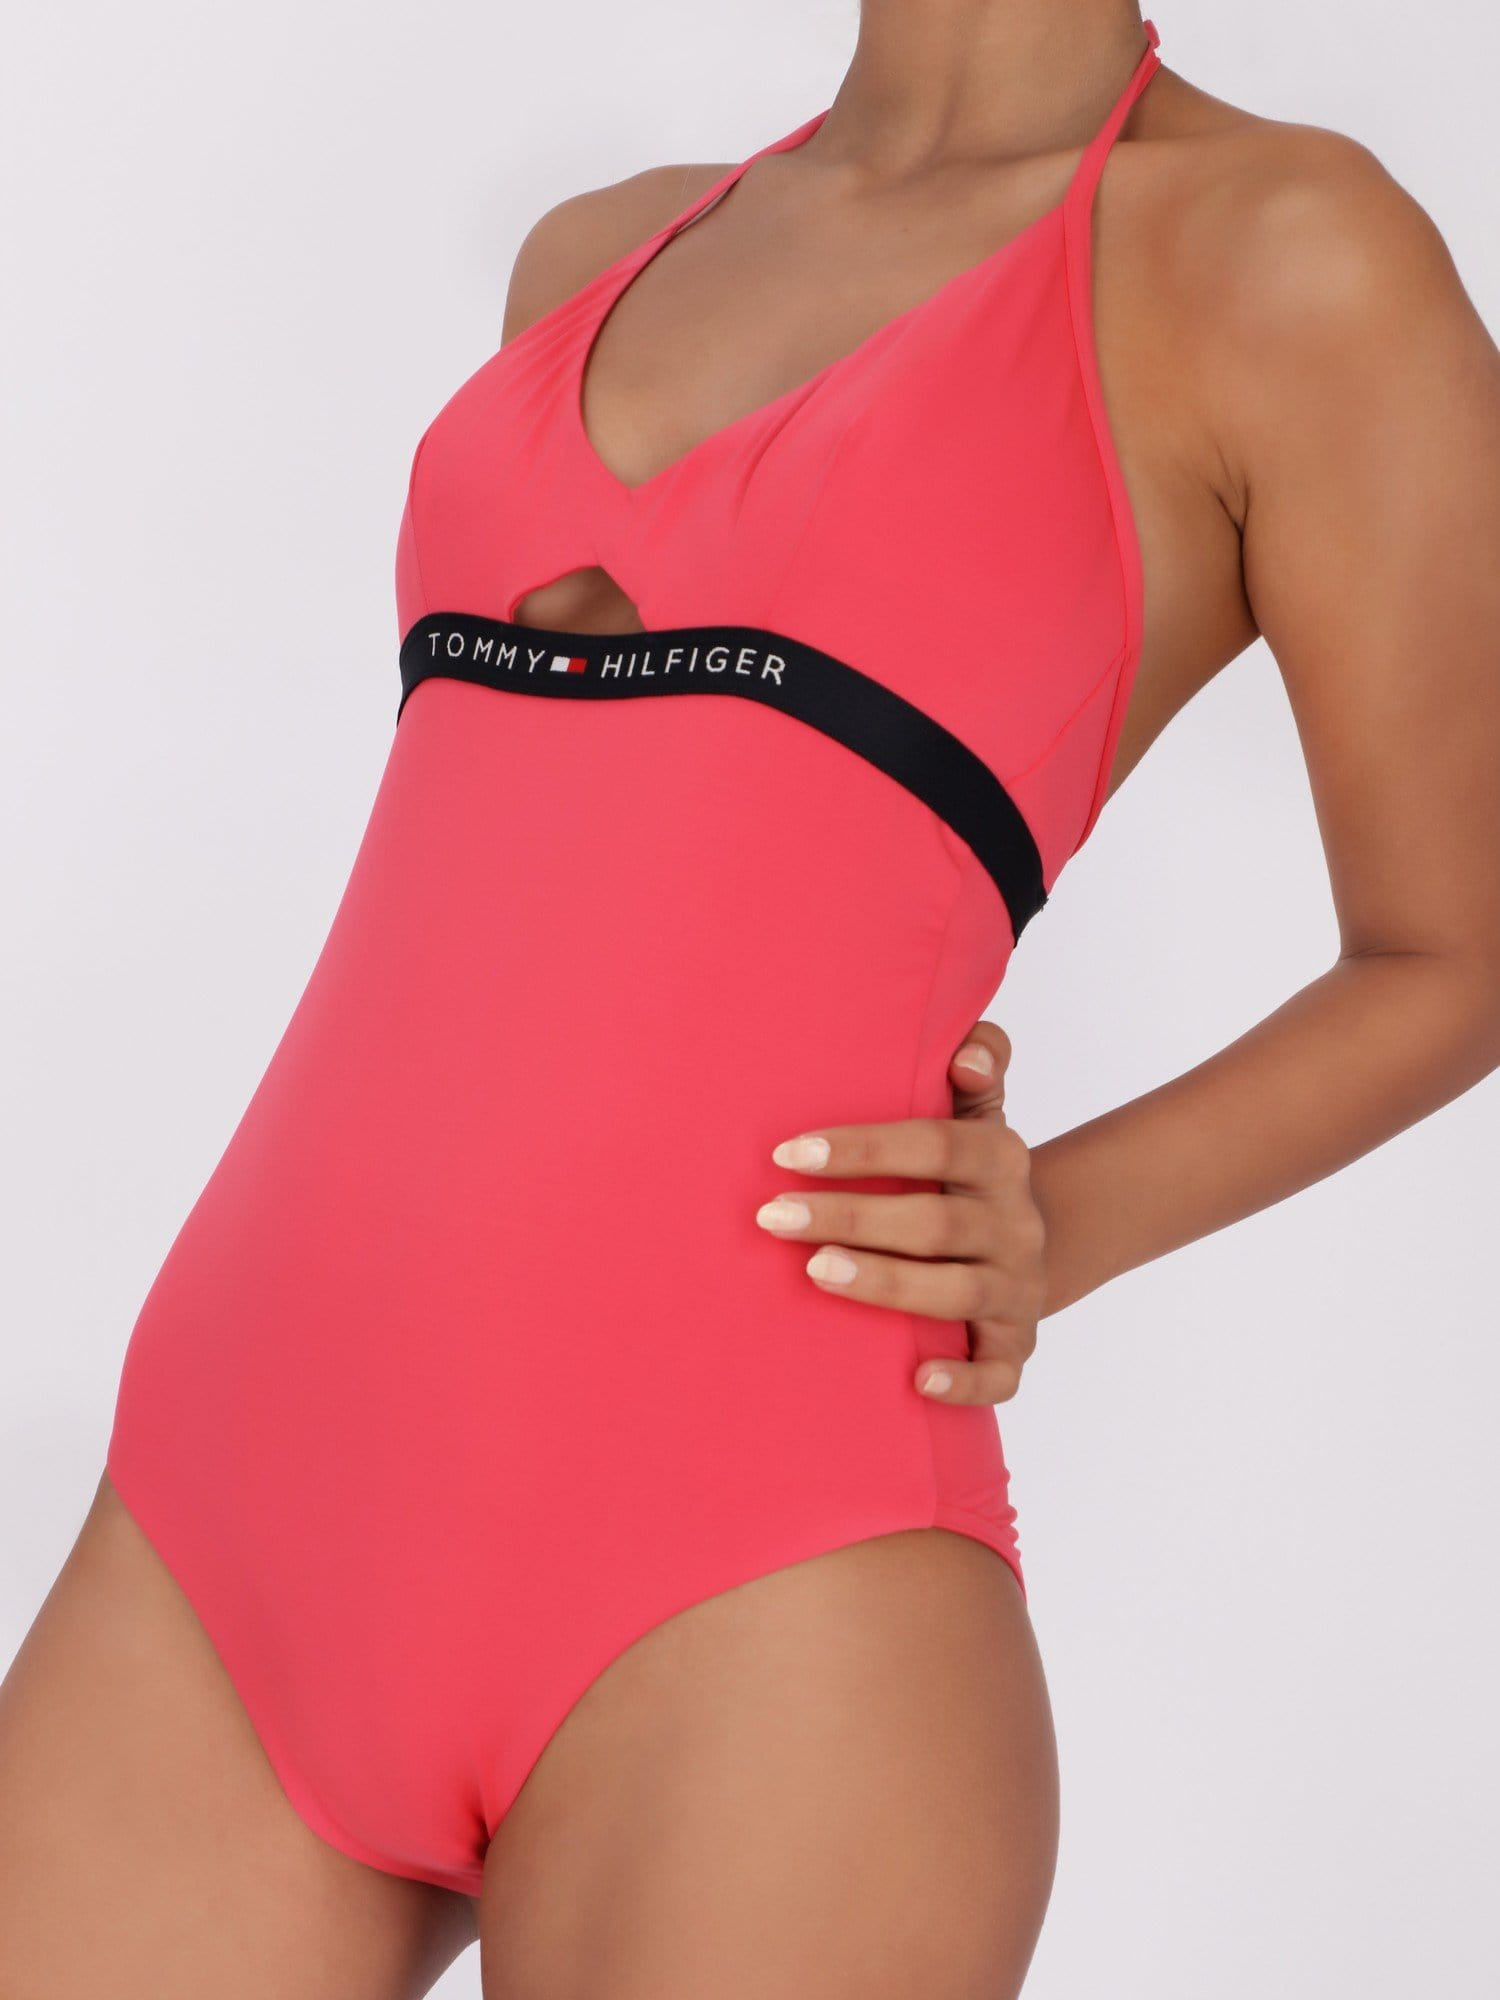 Tommy Hilfiger Swimwear Triangle Cut-out One Piece Swimsuit